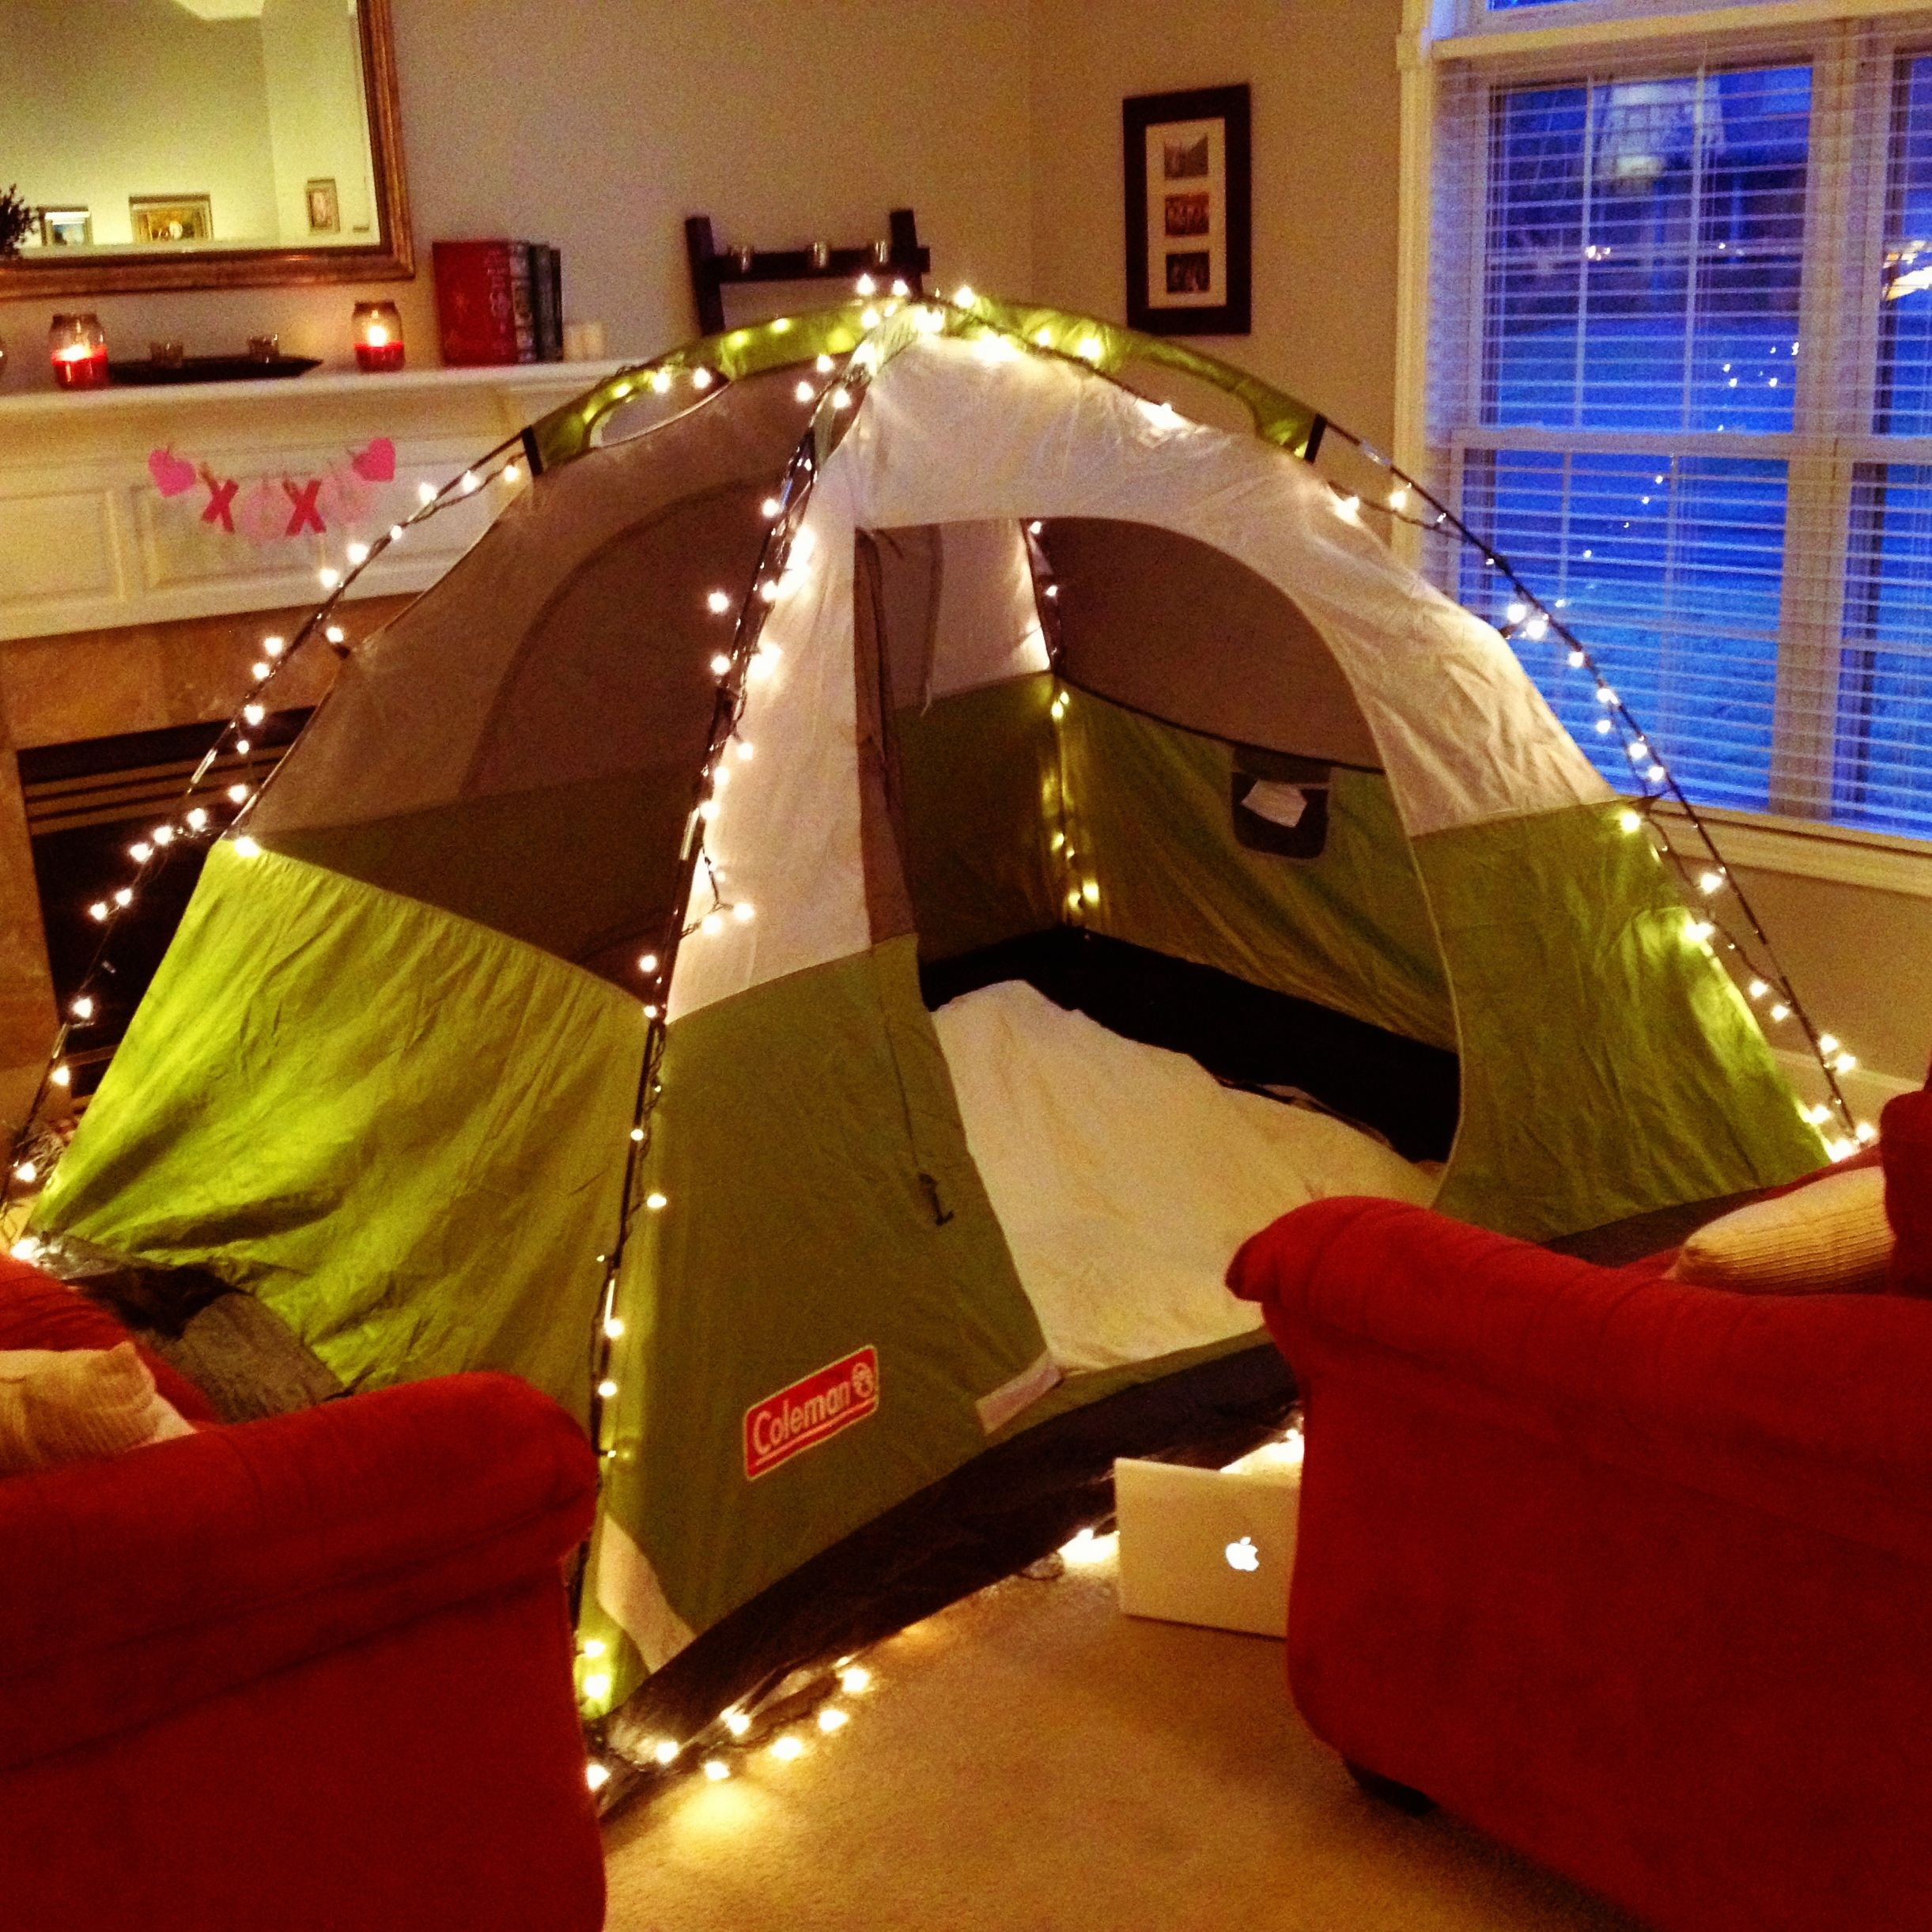 Best 25 indoor camping ideas on pinterest how to light fire pit fire pit without gas and Come home year decorations